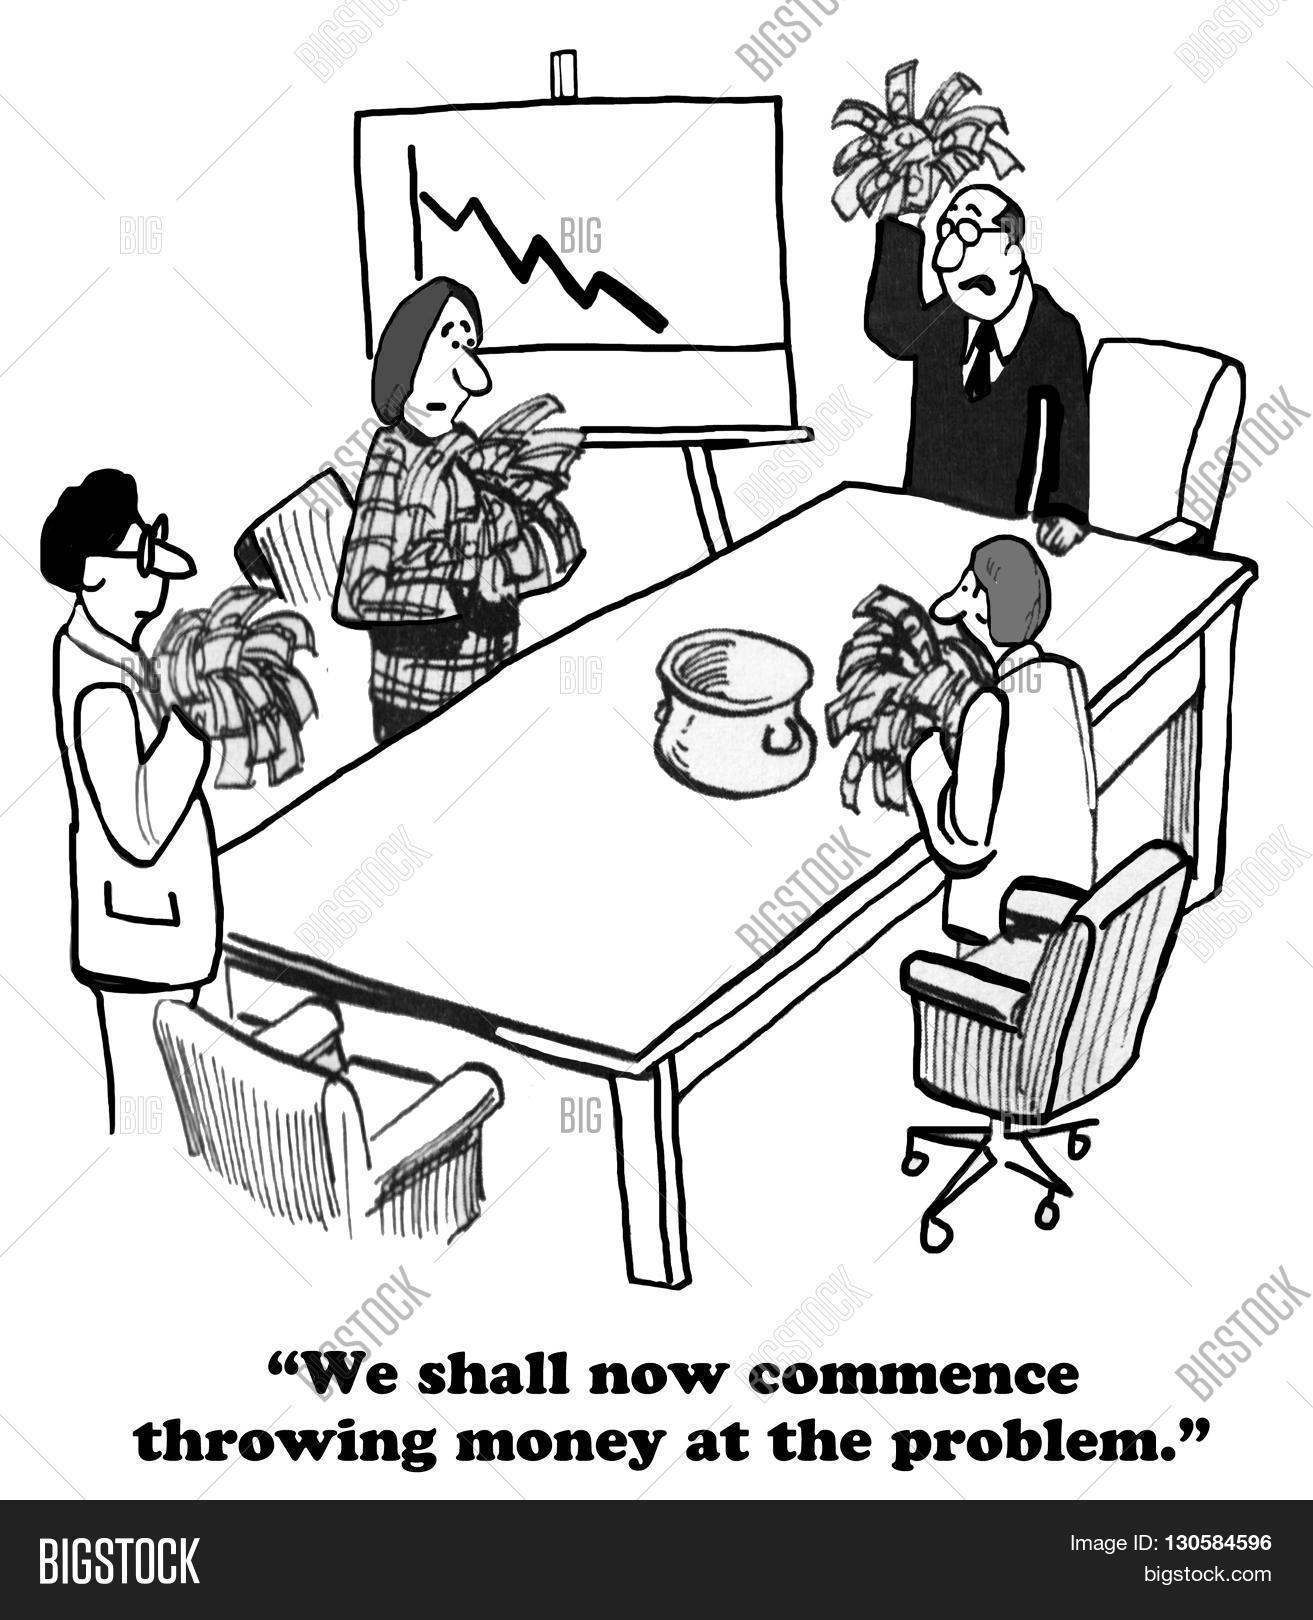 Business Cartoon About Image & Photo (Free Trial) | Bigstock